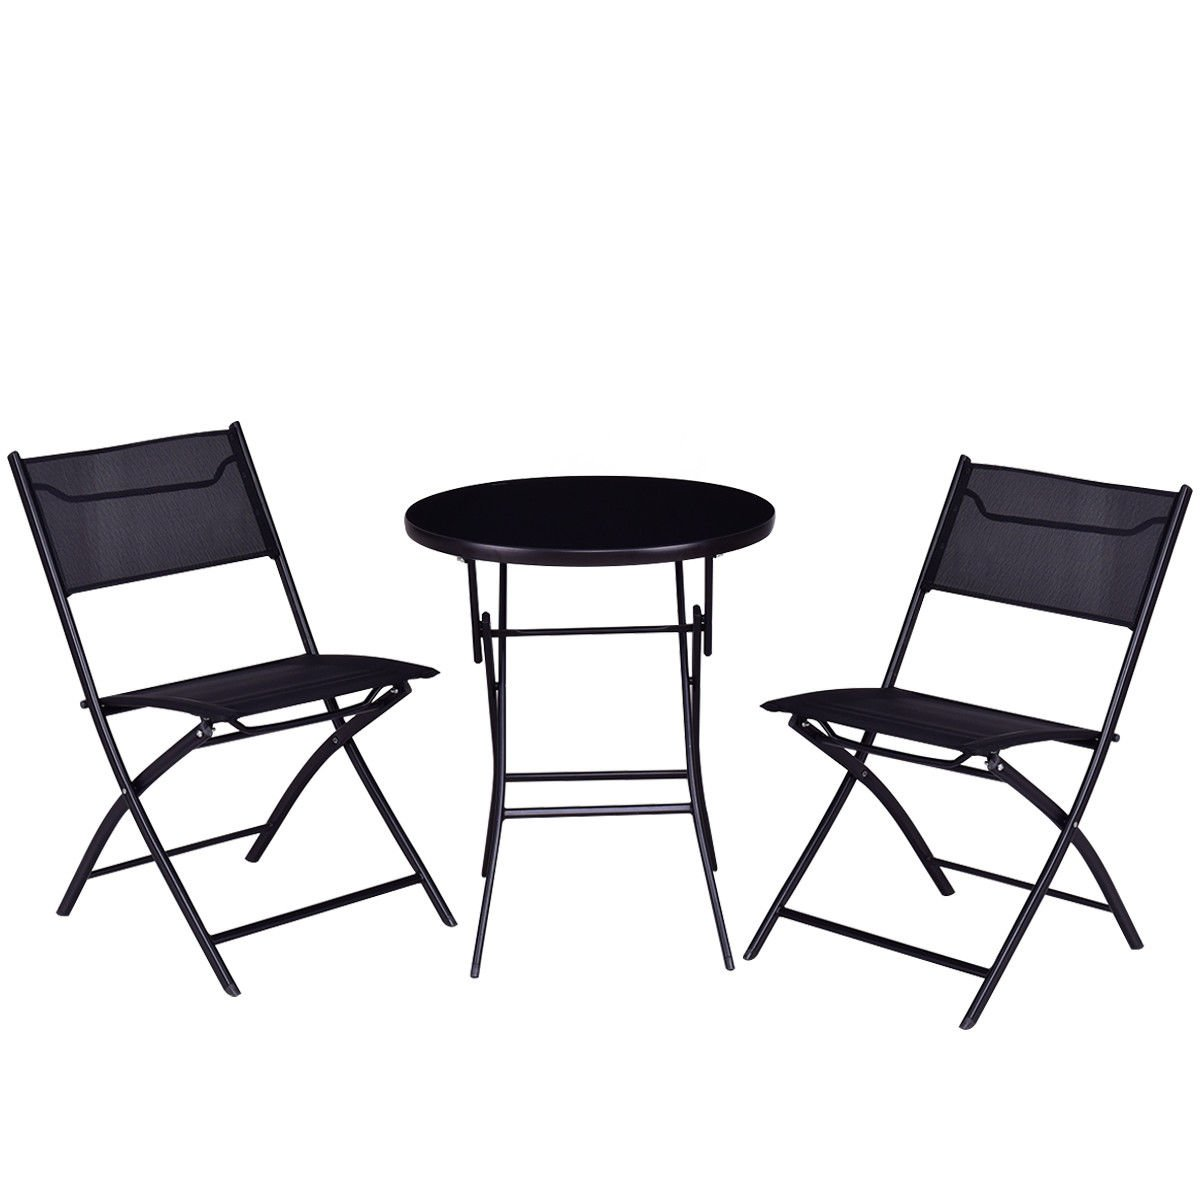 Giantex 3PC Bistro Set Folding Round Table and Chair Set Outdoor Furniture Backyard (Round Table) HW56173